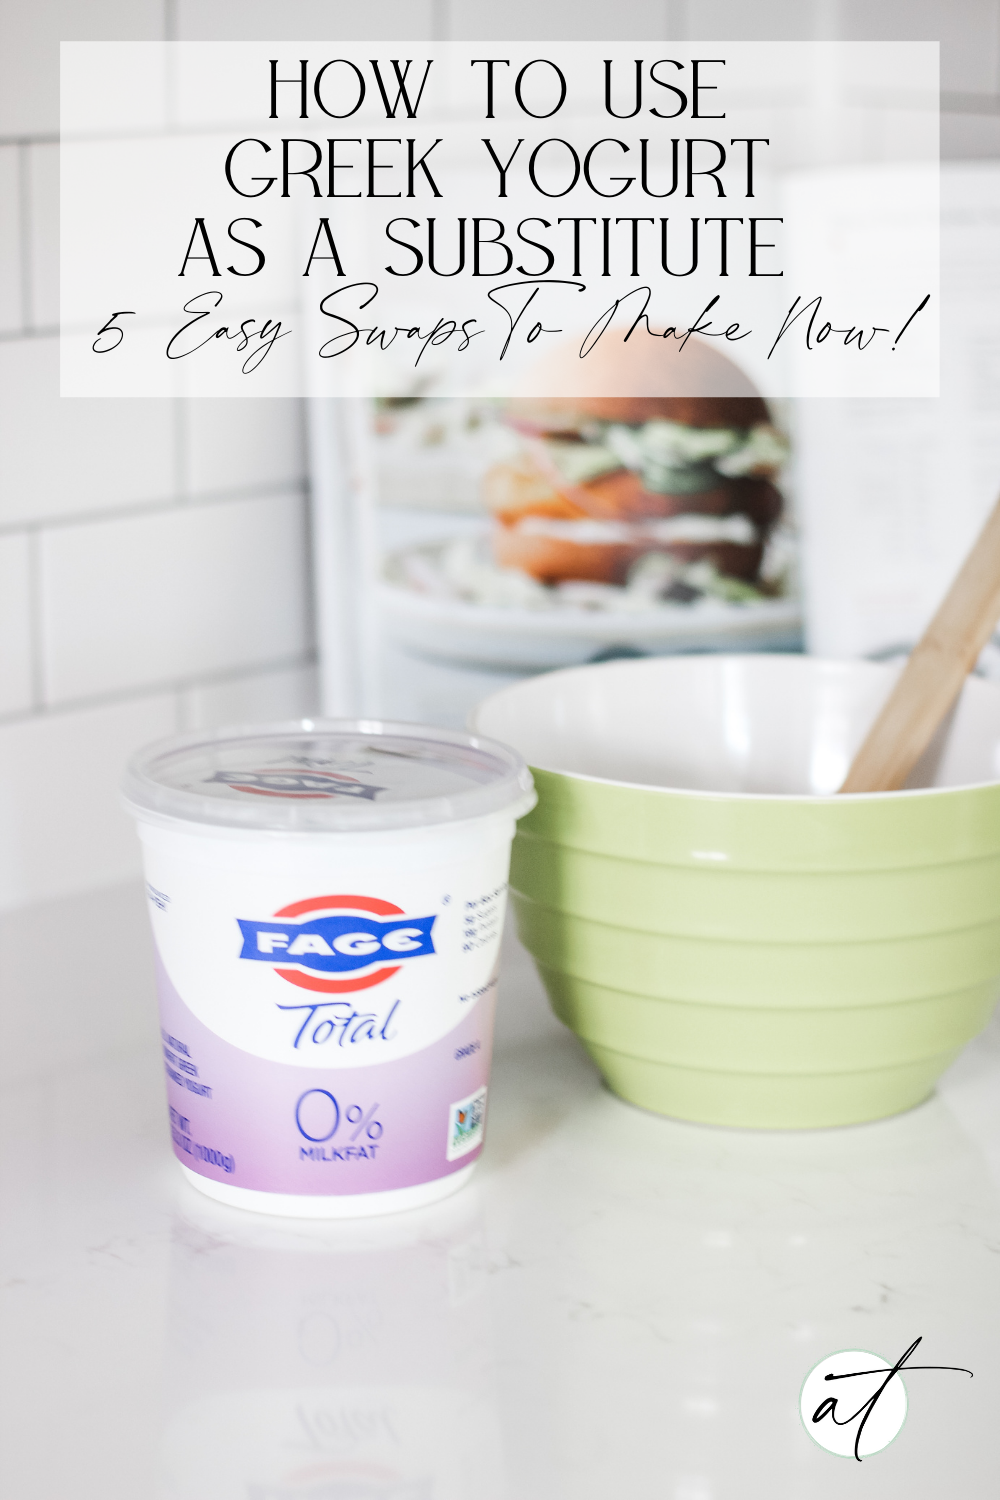 Want a simple way to cut calories and up the protein ante? This article will show you how to use Greek Yogurt as a substitute.